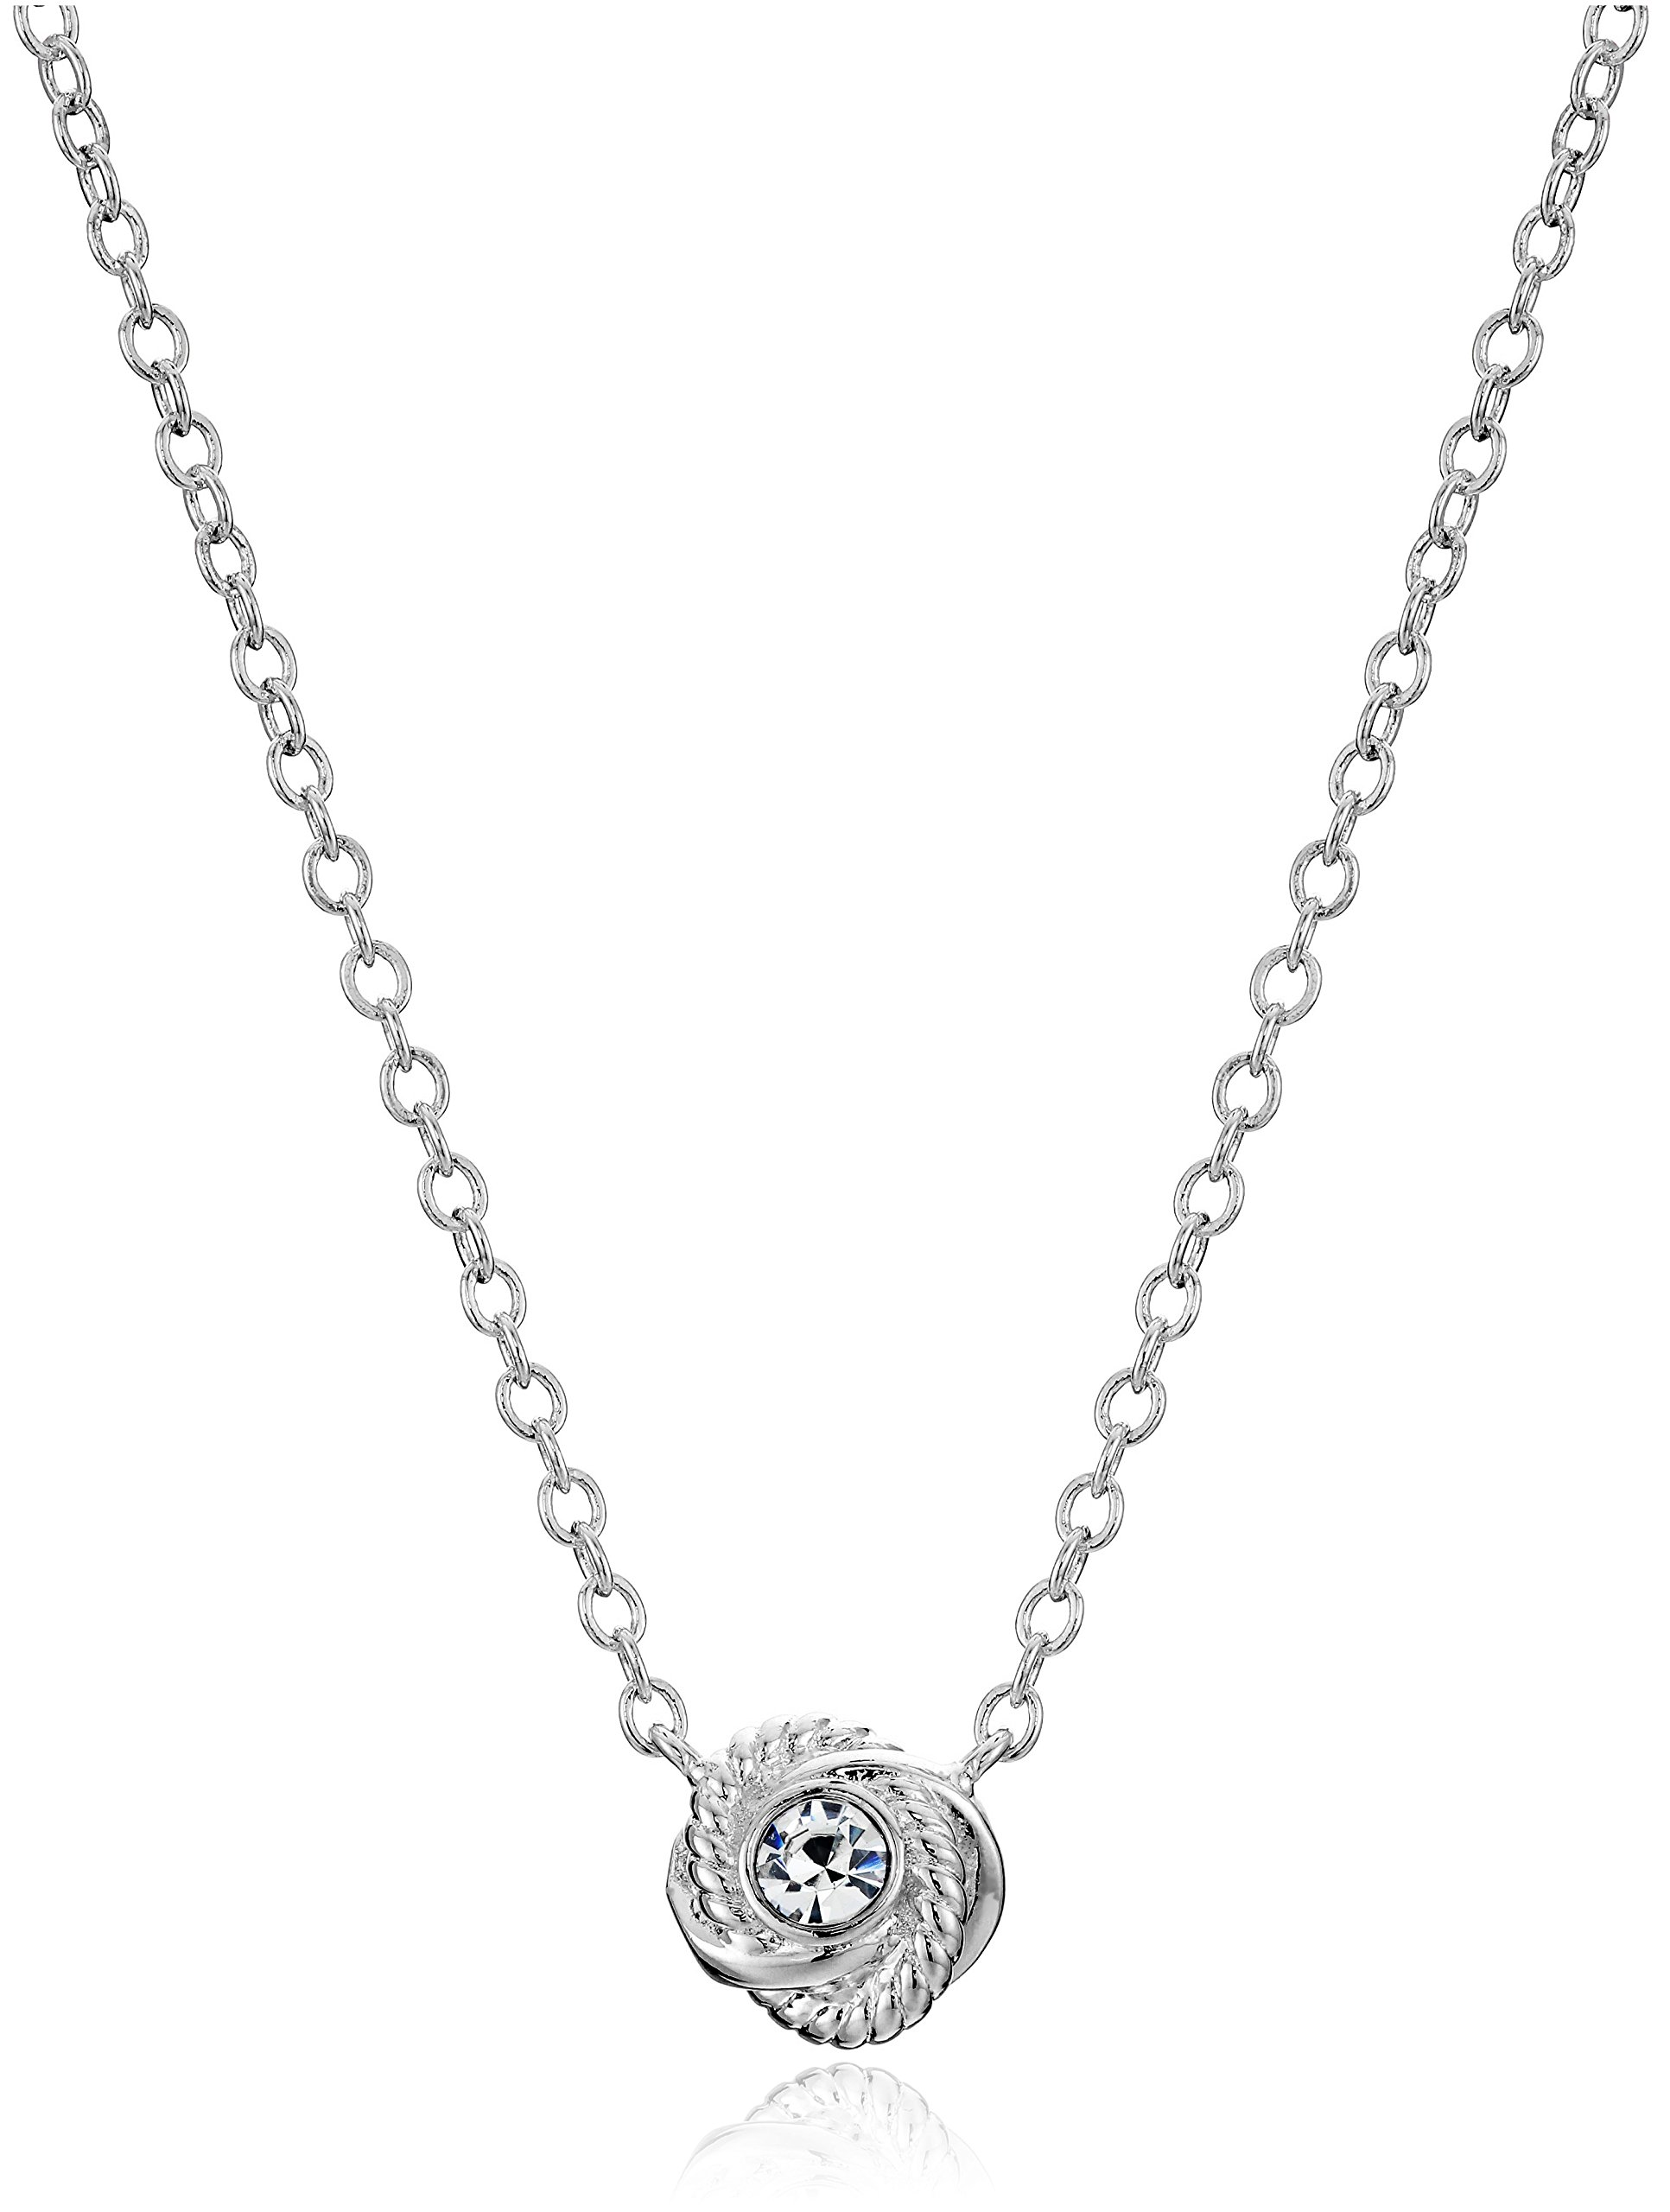 Kate Spade New York ''Infinity and Beyond Clear/Silver Knot Mini Pendant Necklace